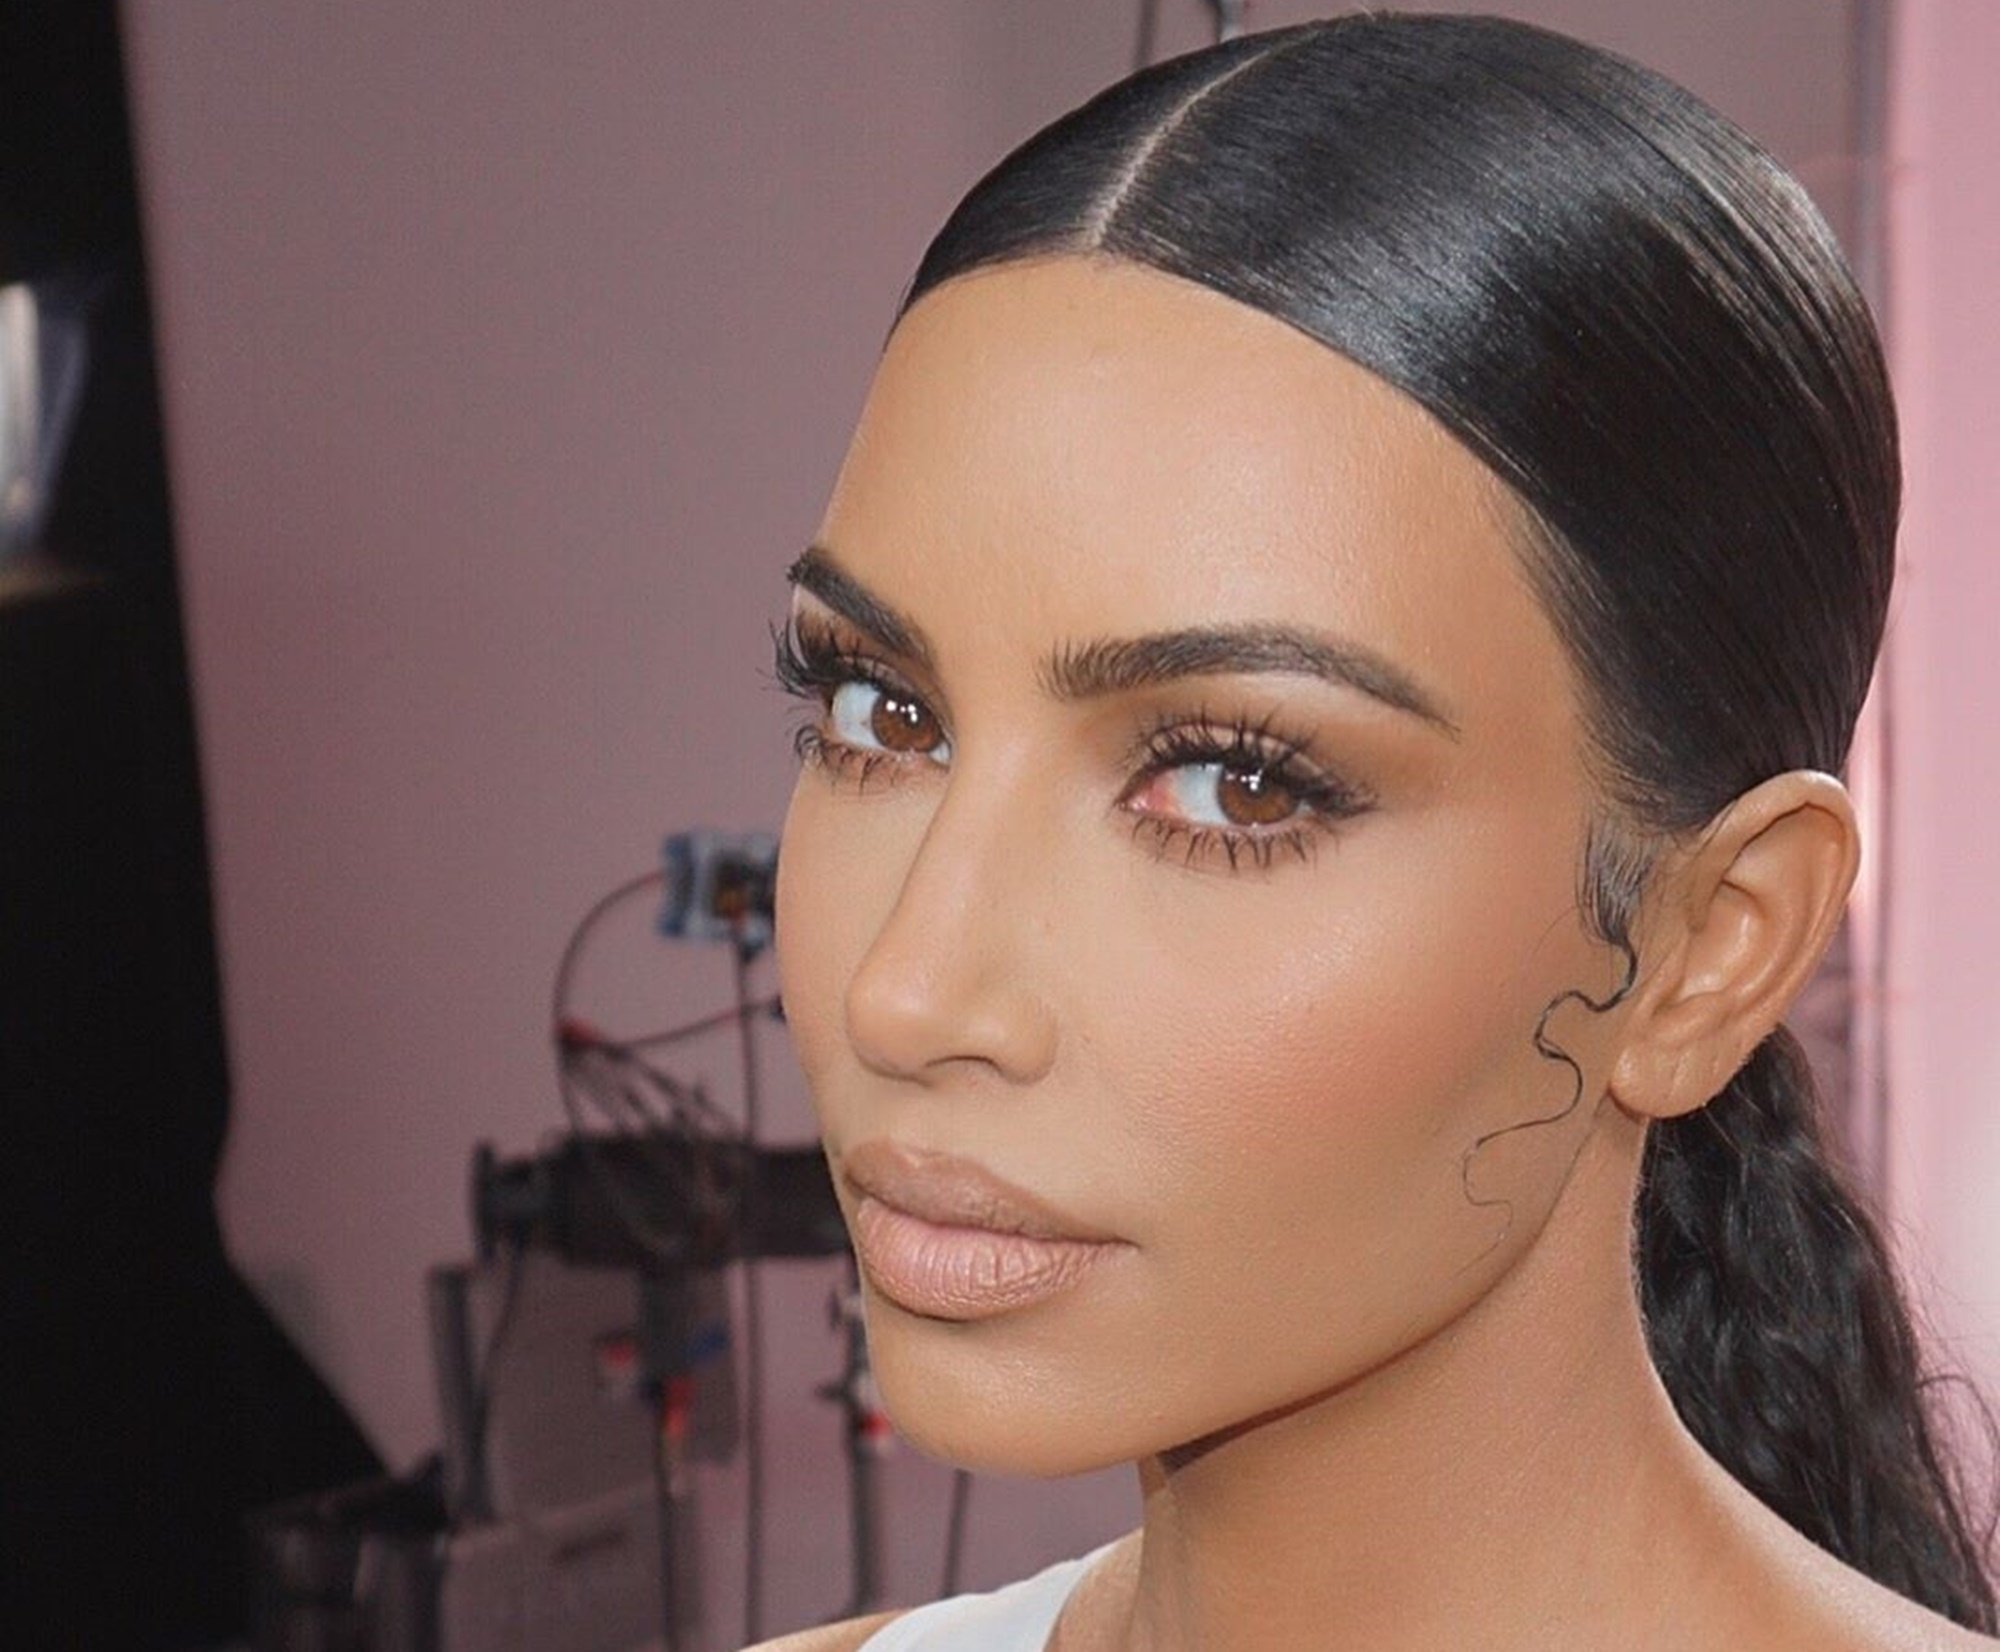 kim-kardashian-wants-to-be-become-a-lawyer-by-2022-here-is-what-kanye-west-did-to-help-her-get-there